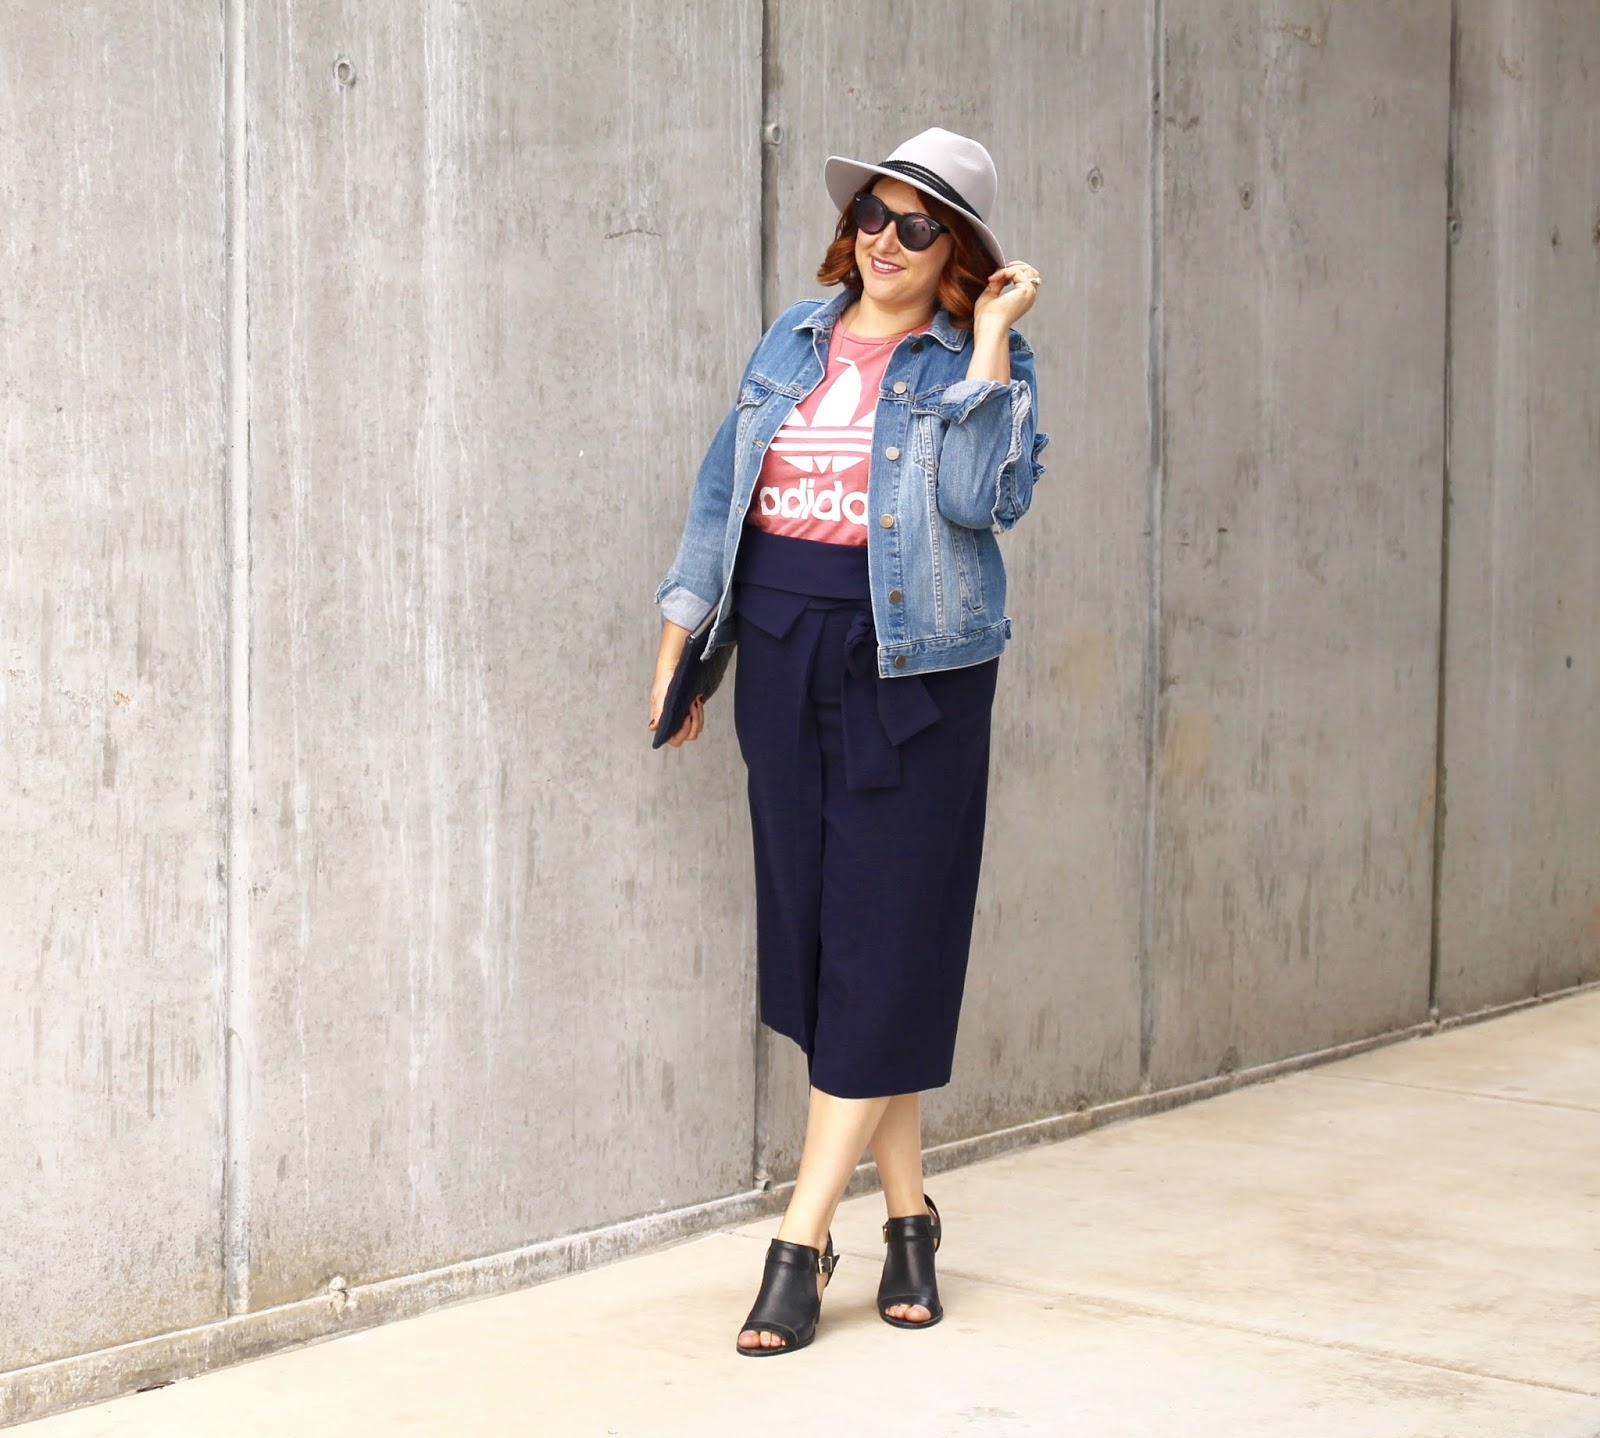 Cole Haan shoes, Pencil skirt, Adidas Tank, red hair, ruffle denim jacket